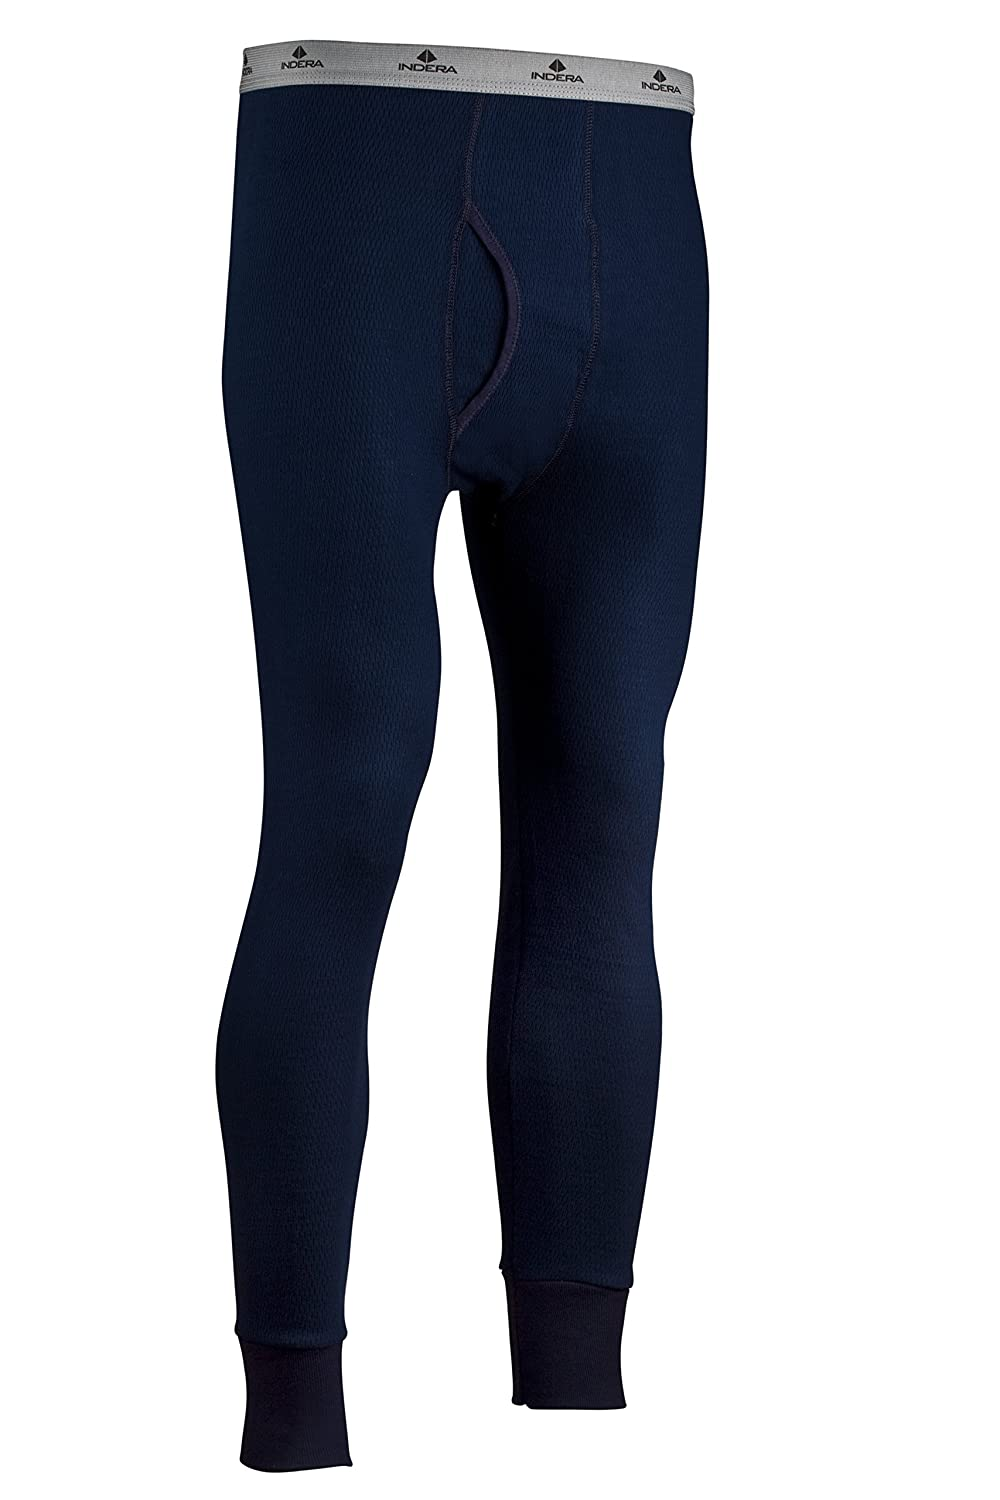 Indera Men's Icetex Cotton Outside/Fleeced Polyester with Silvadur Inside Pant ColdPruf Baselayer 286DR